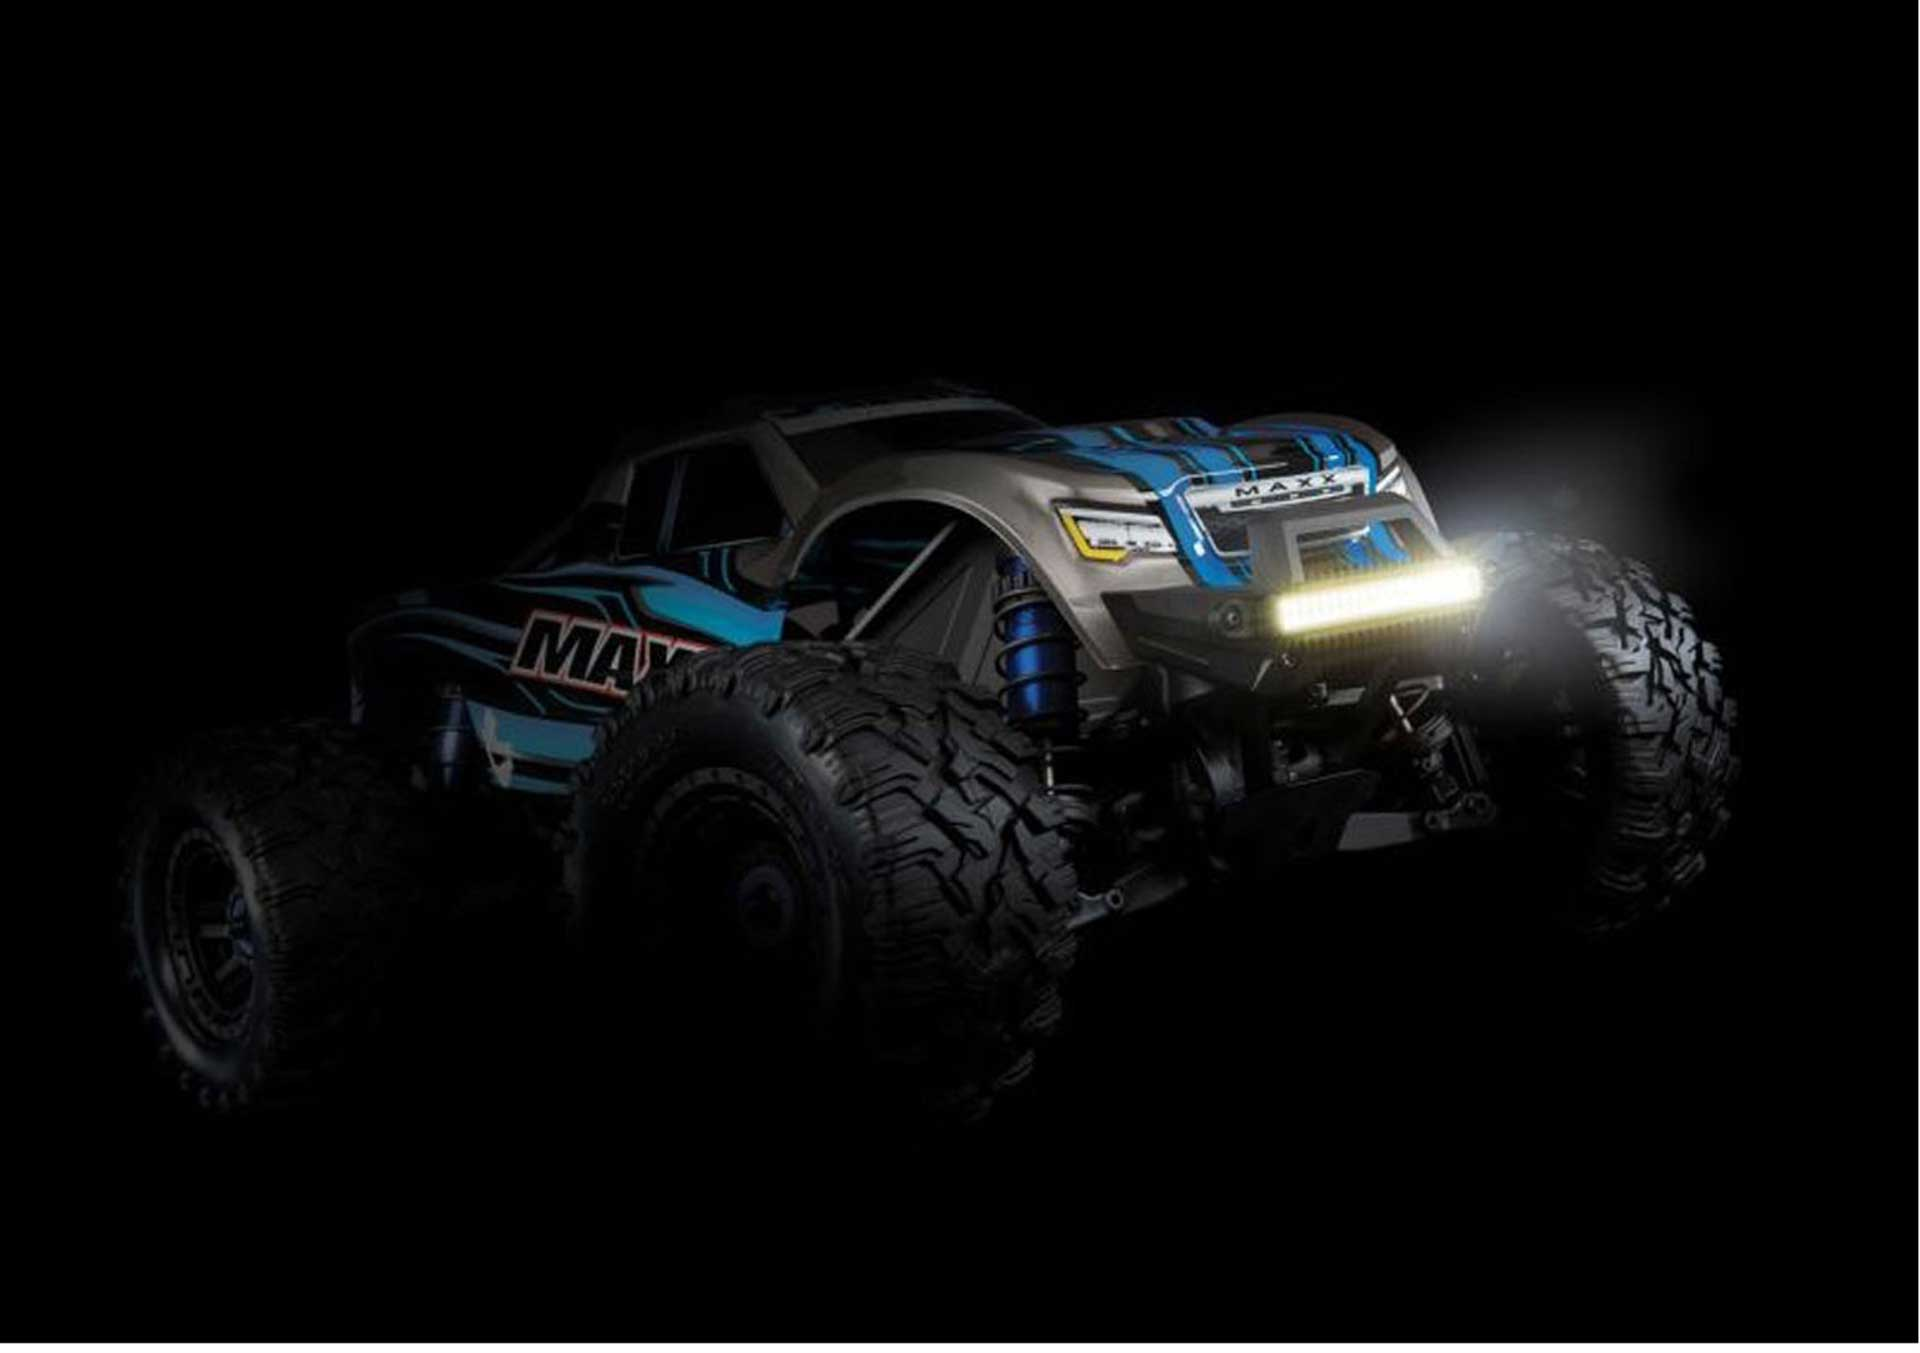 TRAXXAS LED LICHT-Kit MAXX komplett mit High-Voltage-Wandler